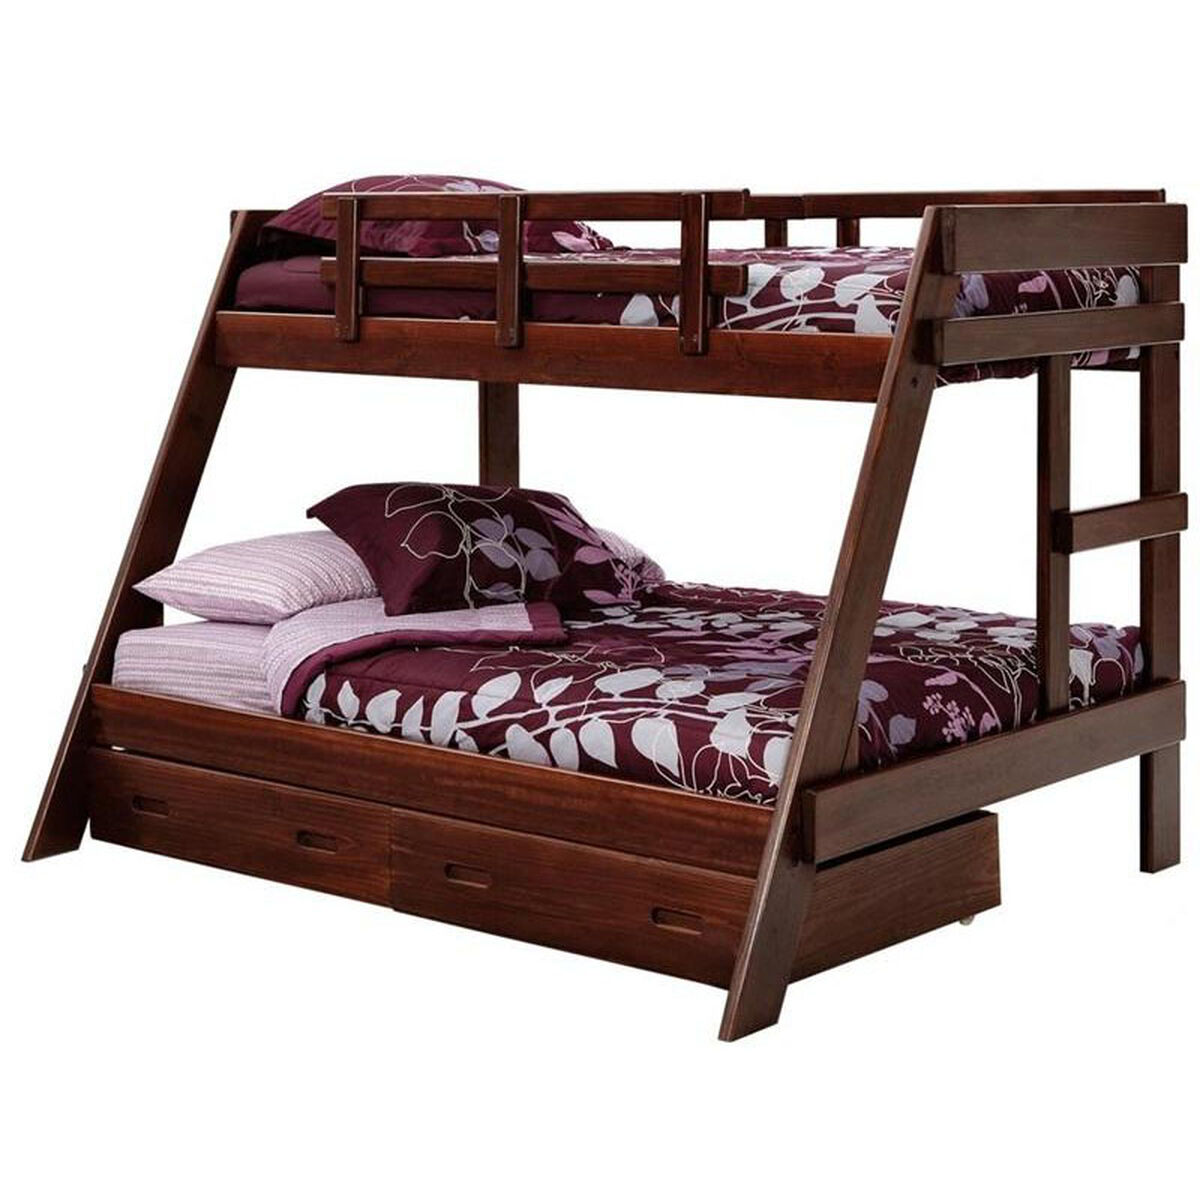 Chelsea home furniture 3626503 s chel 3626503 s for Home furniture sites